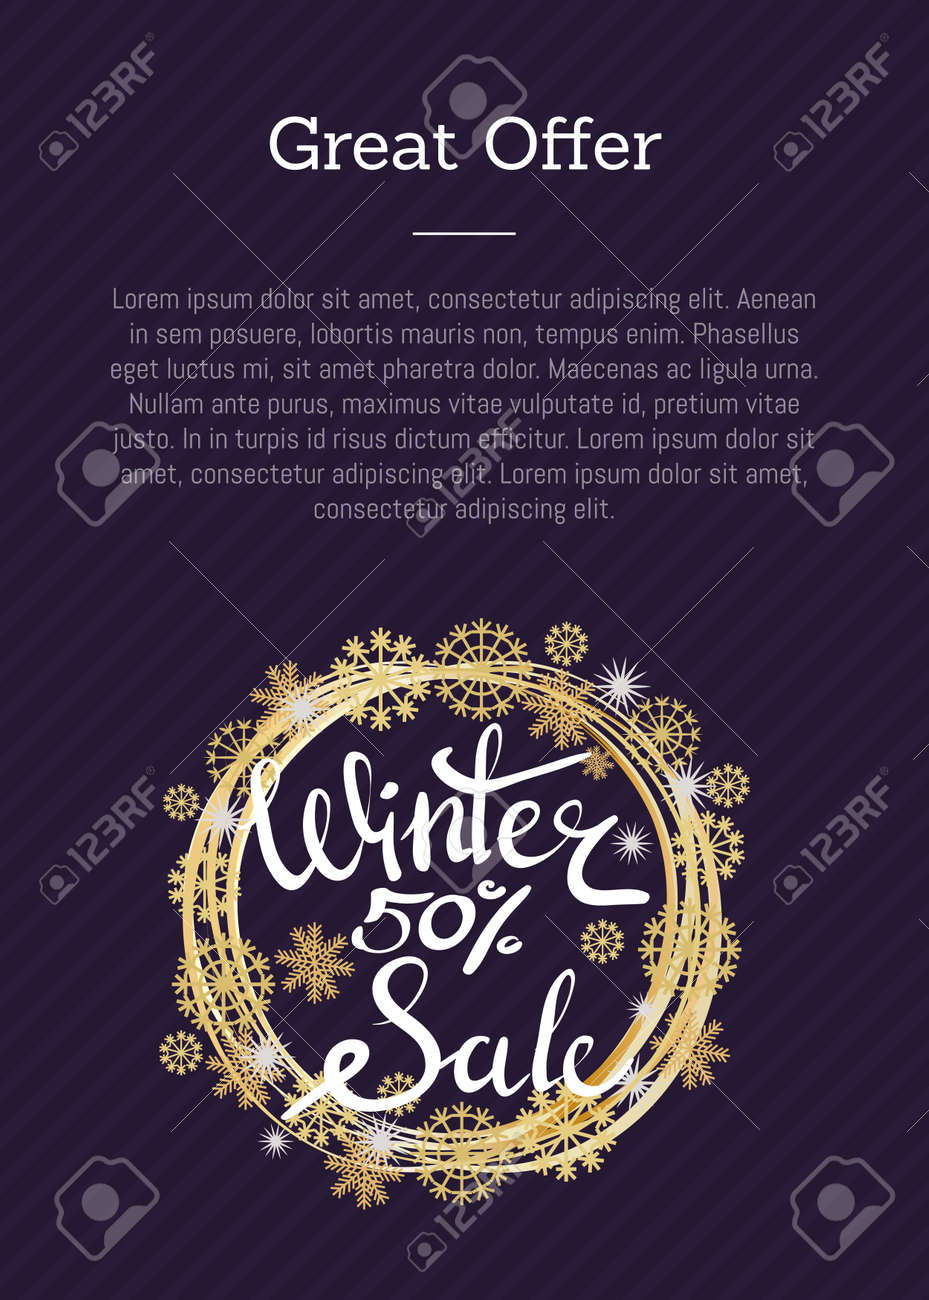 great offer winter sale 50 poster in decorative frame made of